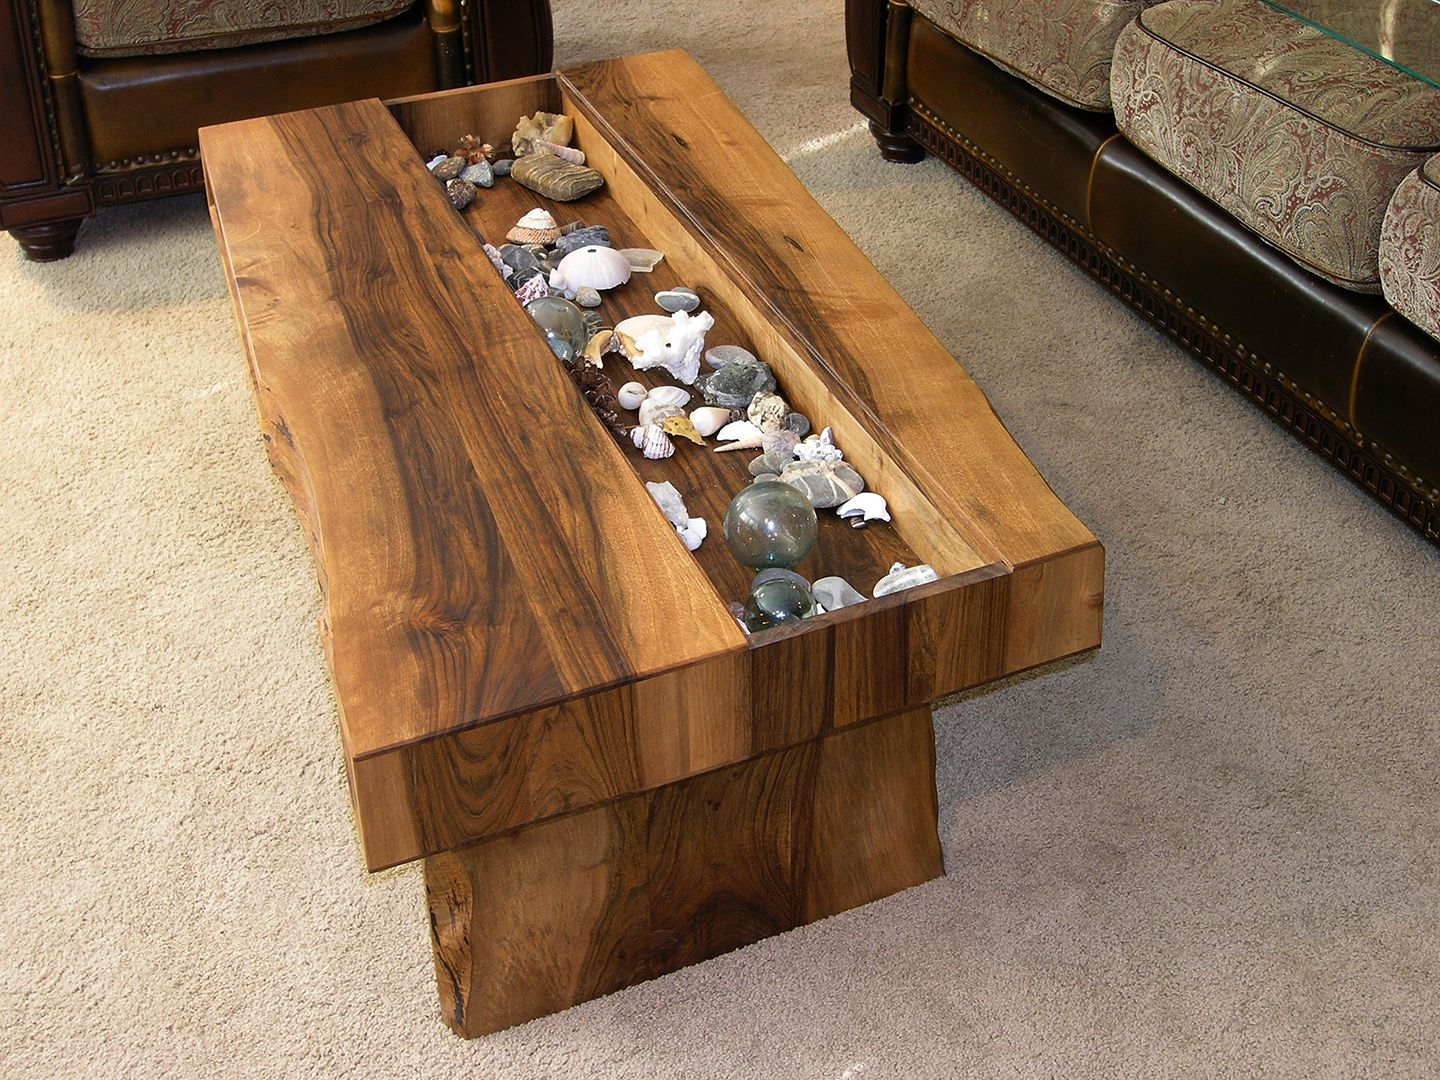 Mapleart Custom Wood Furniture Vancouver Bcaconitum Coffee Table